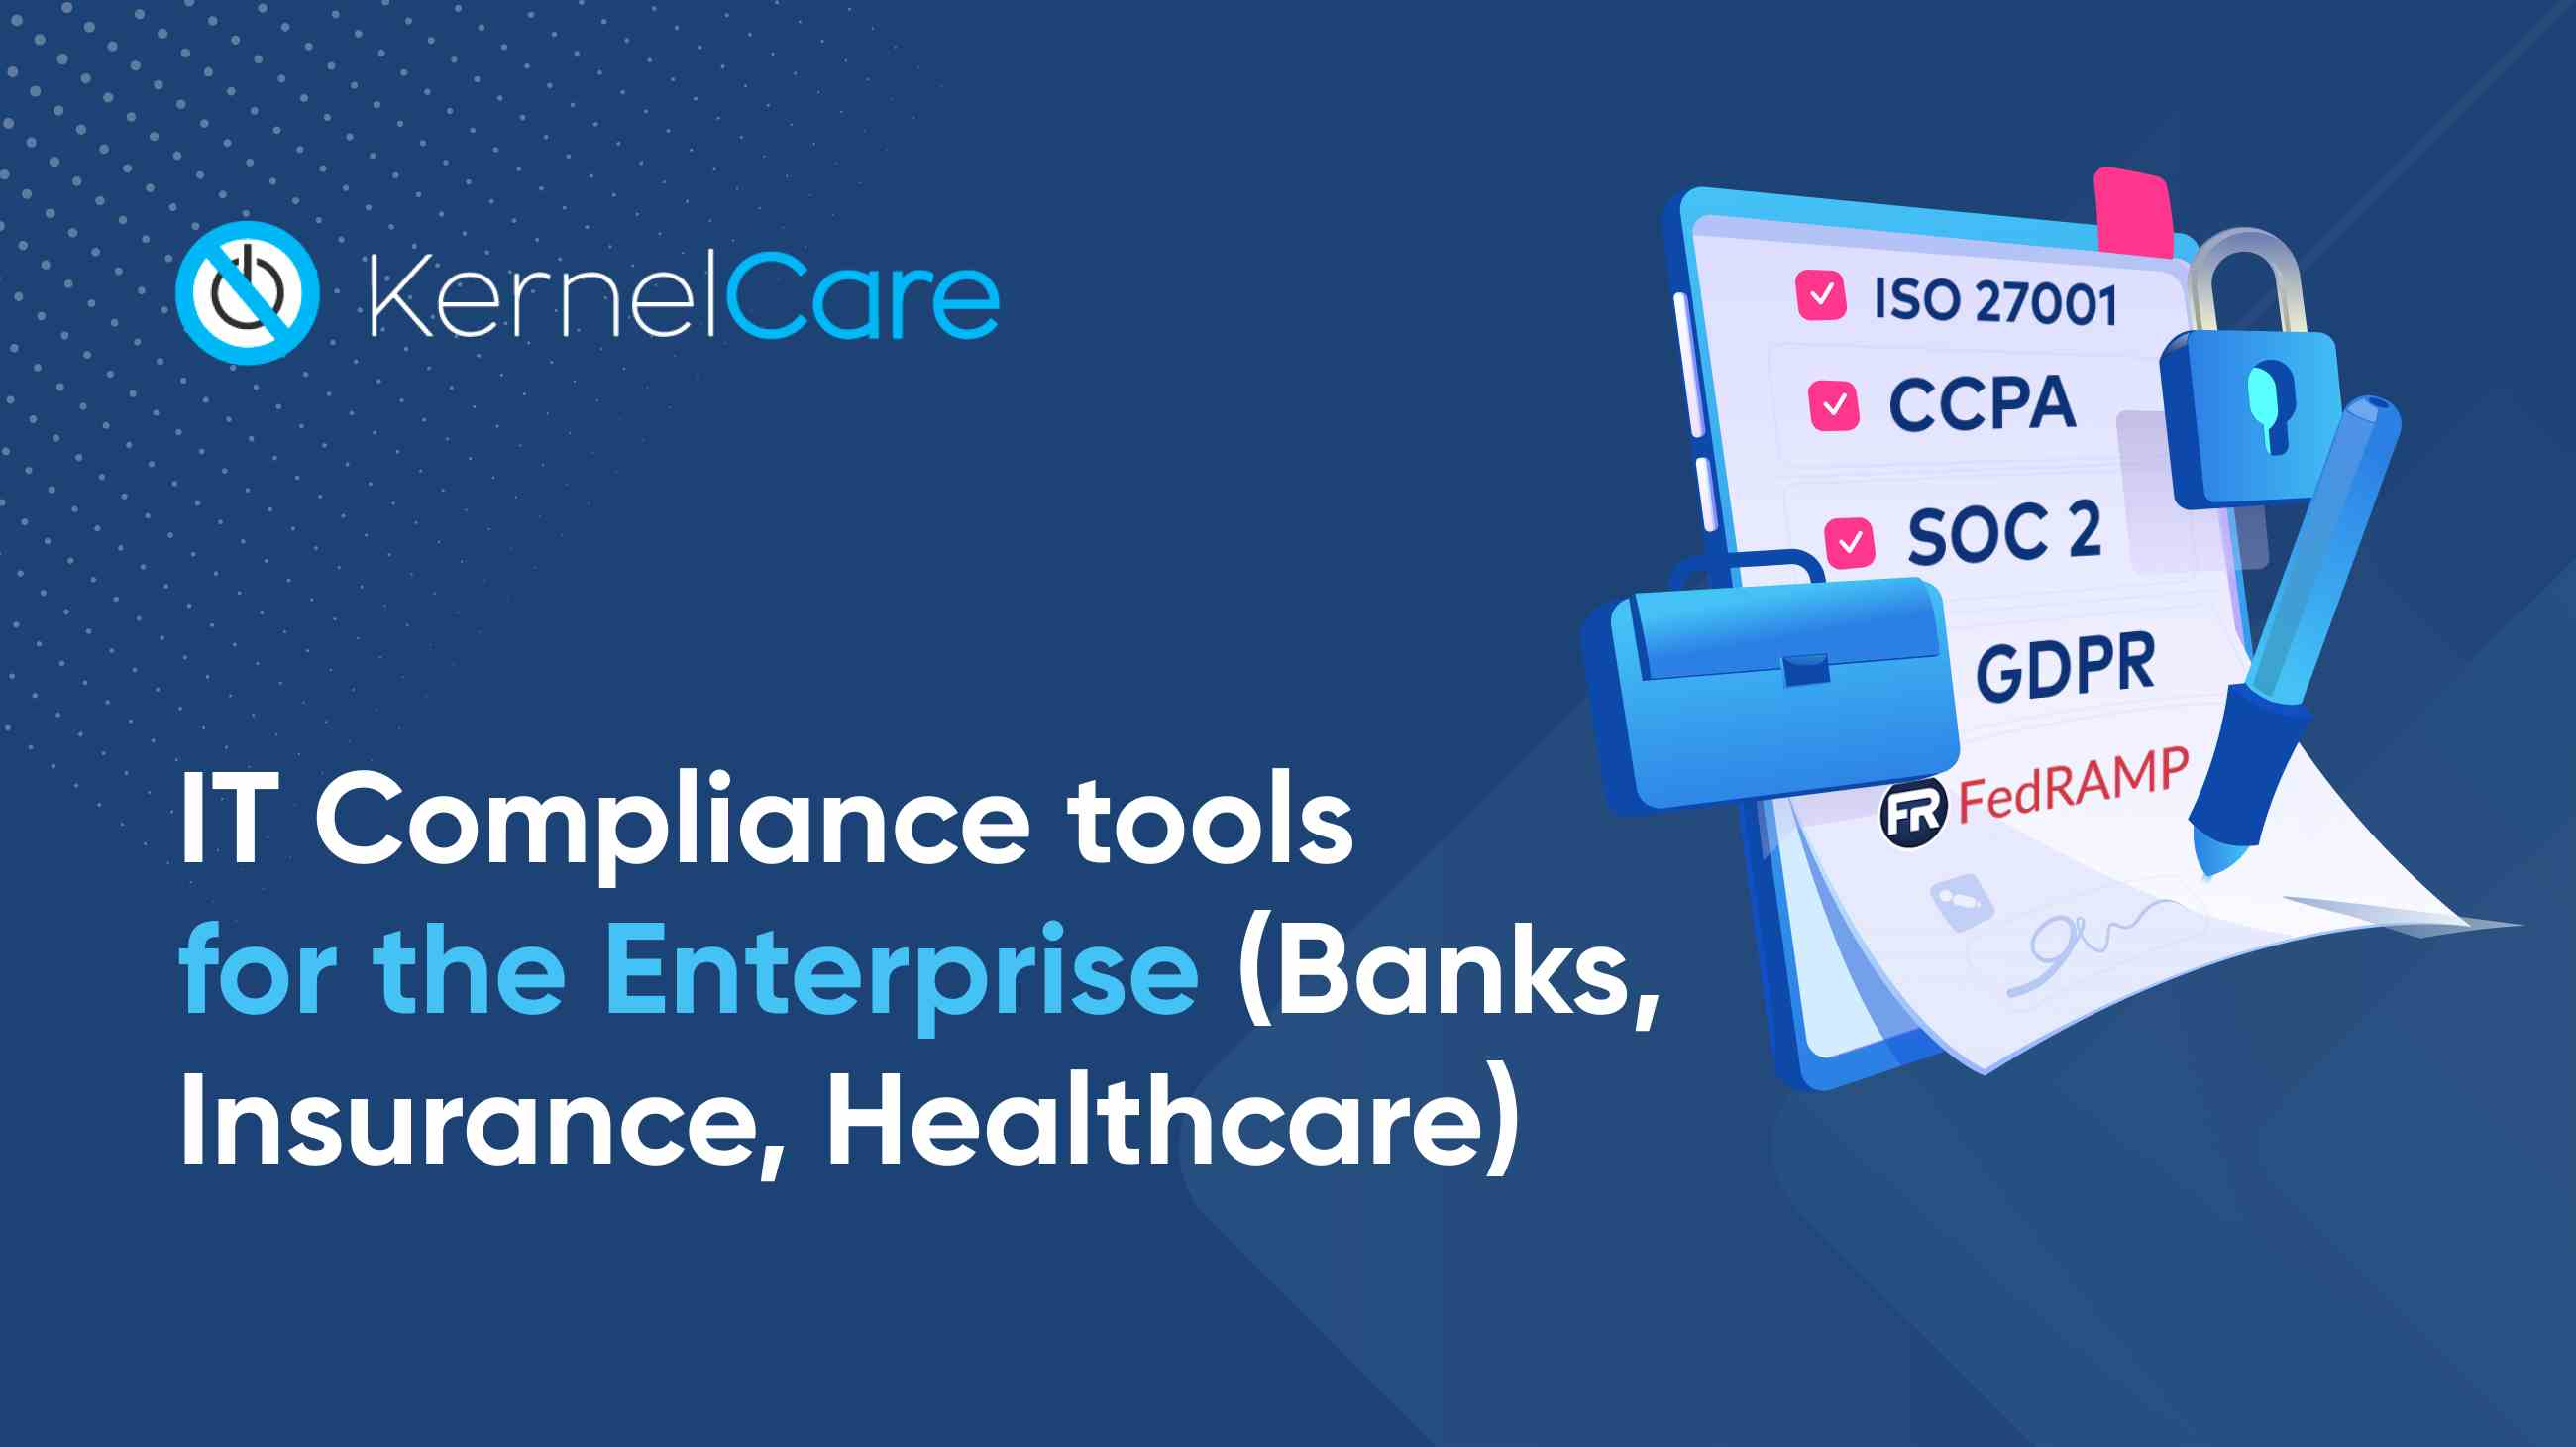 IT Compliance tools for the Enterprise (Banks, Insurance, Healthcare)